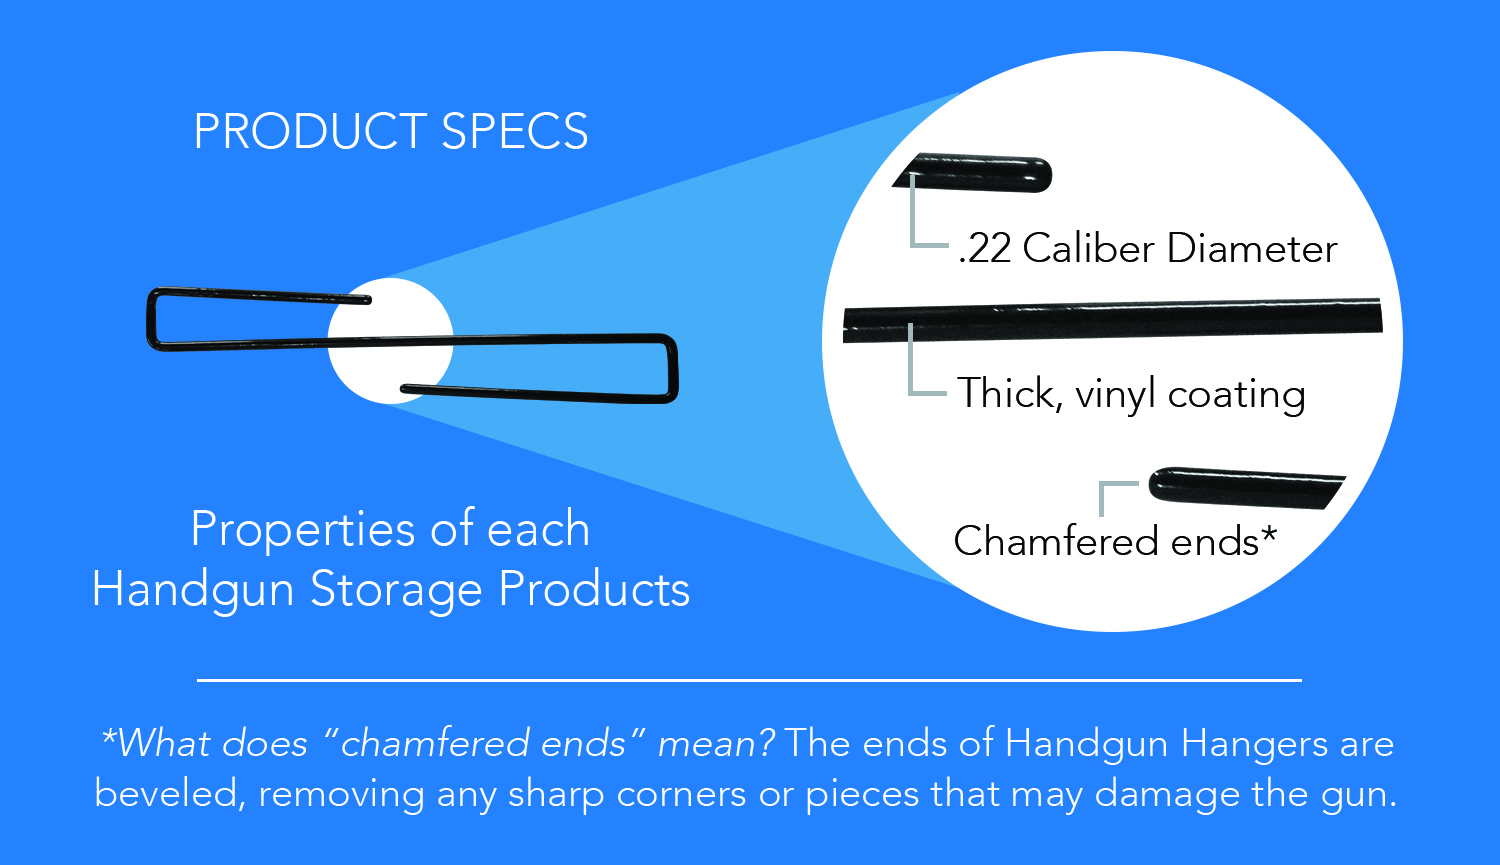 Handgun Hangers product spec infographic